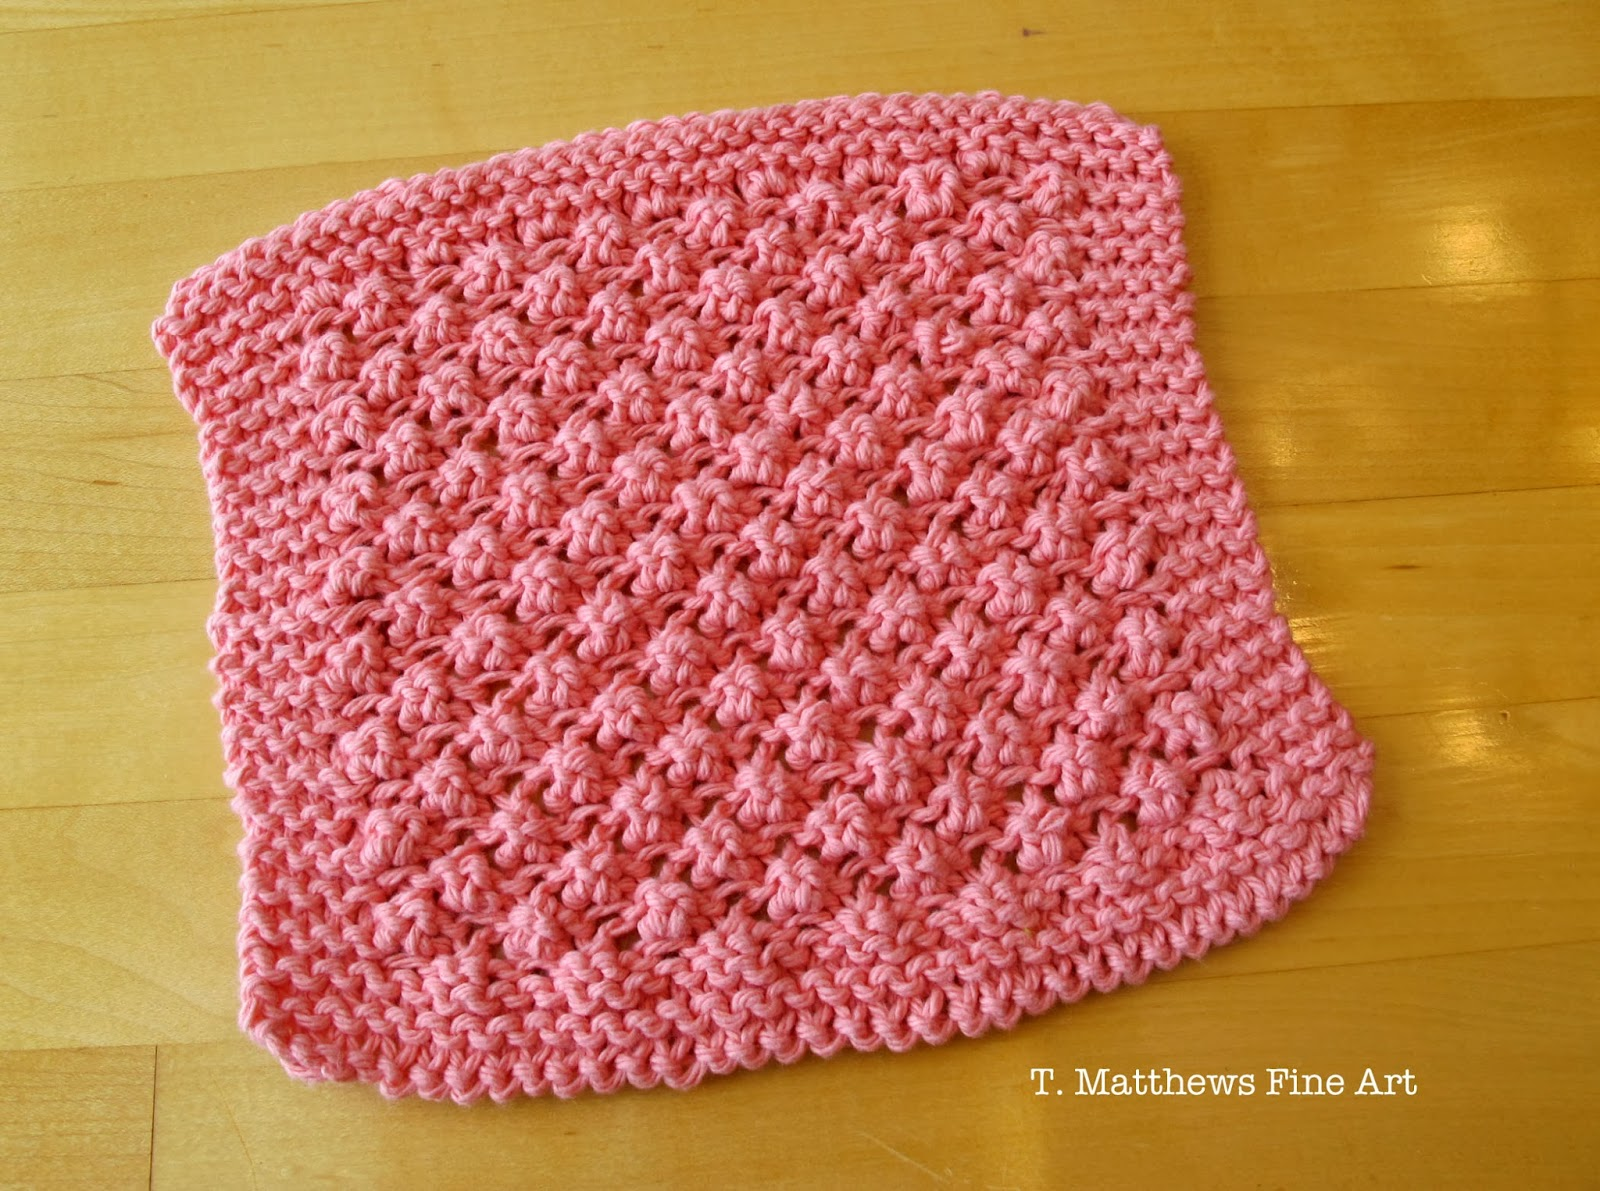 T. Matthews Fine Art: Free Knitting Pattern - Raspberry Baby Washcloth